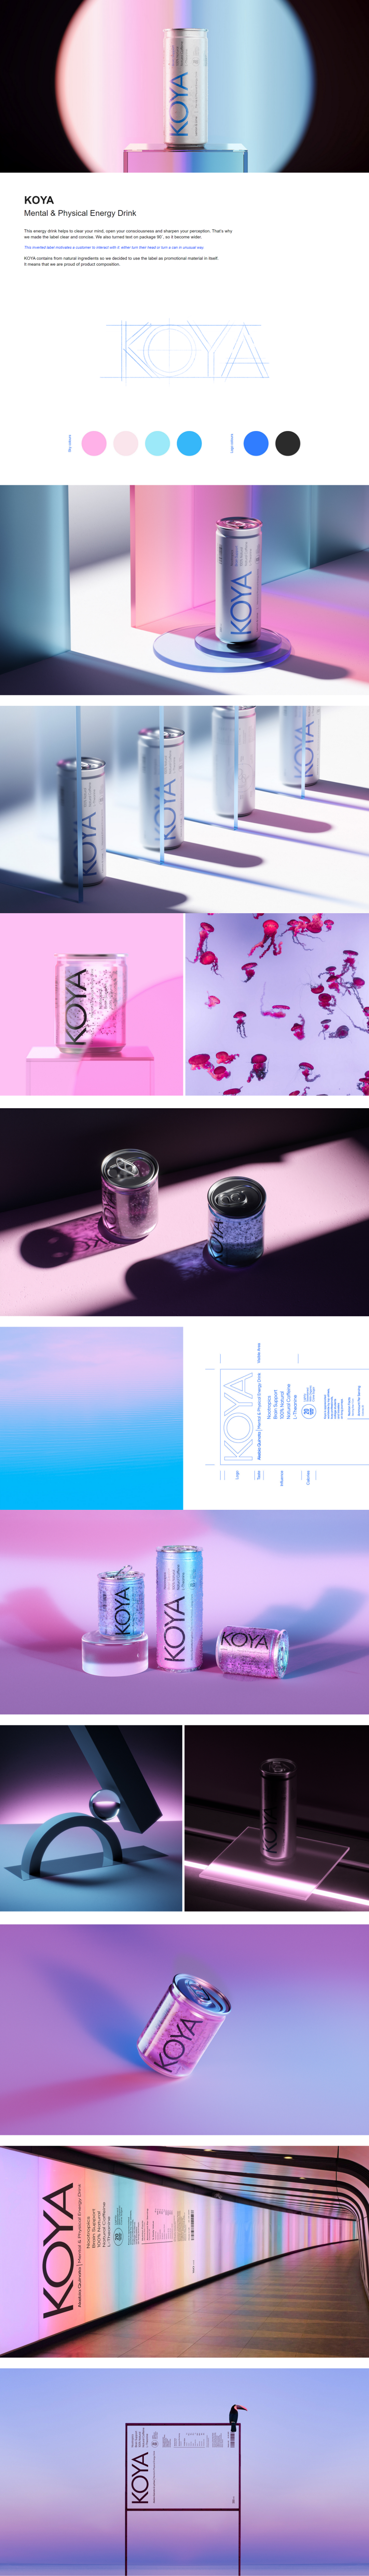 Packaging,Graphic Design,Art Direction